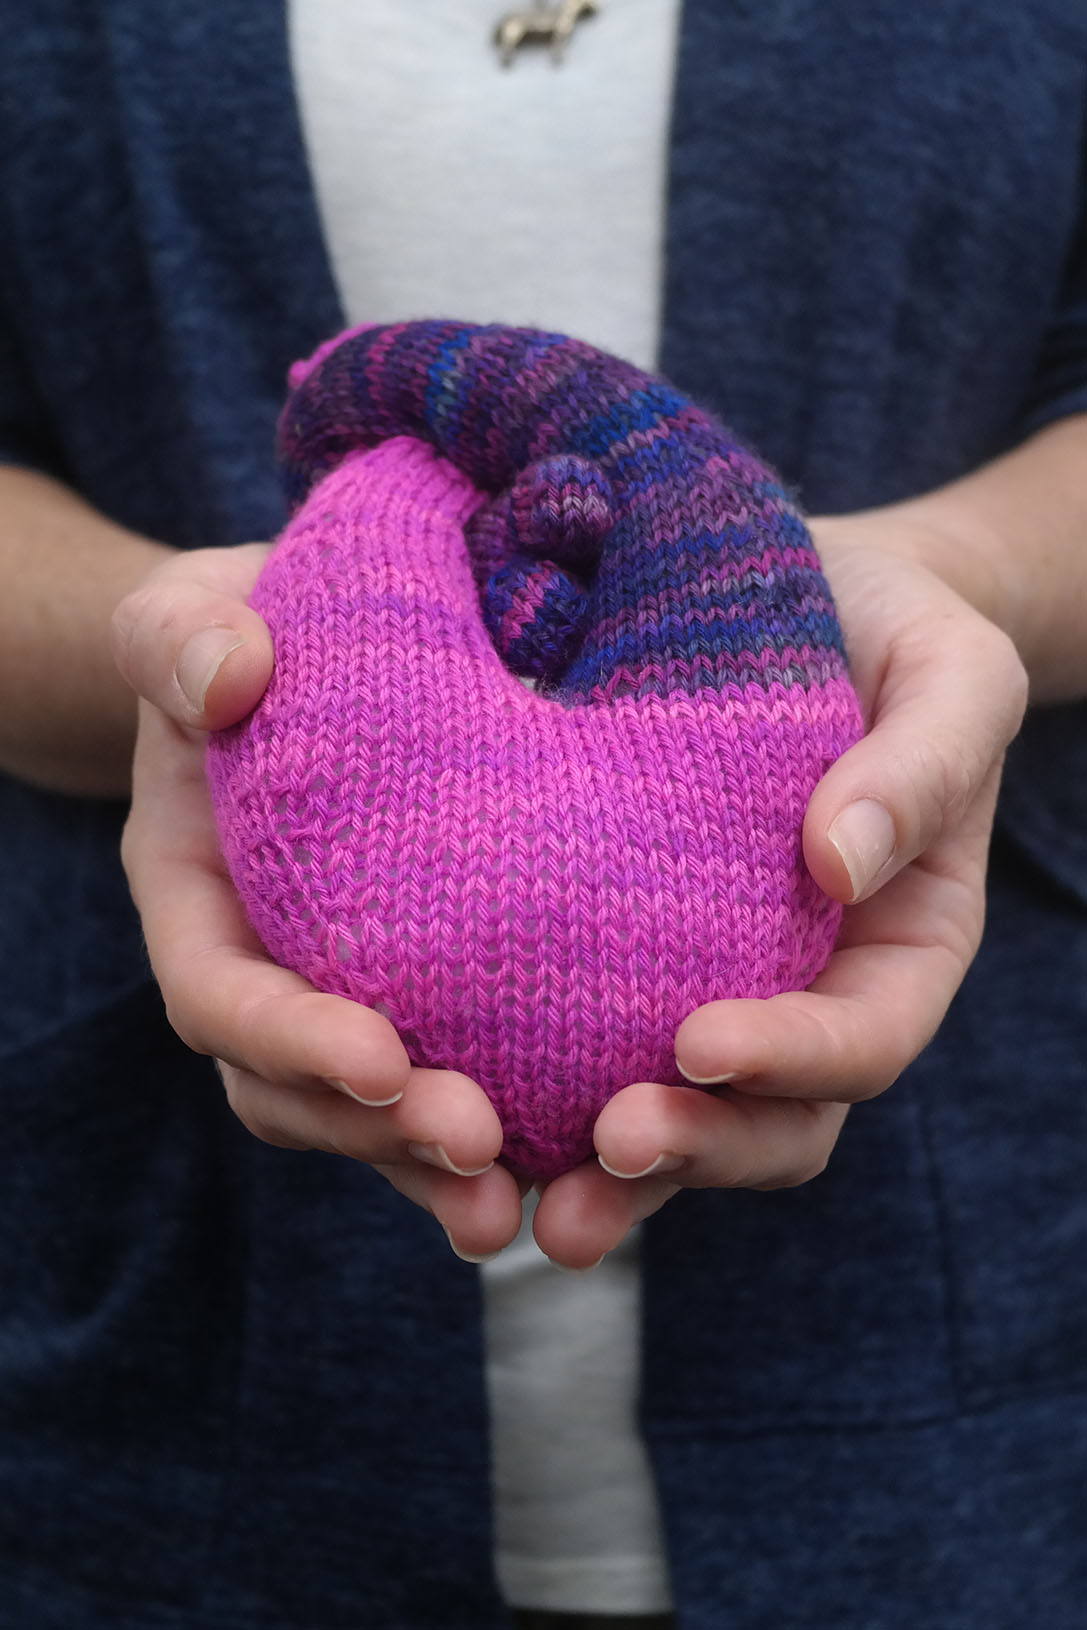 Heart by Kristin Ledgett, knitted by Andrea Cull